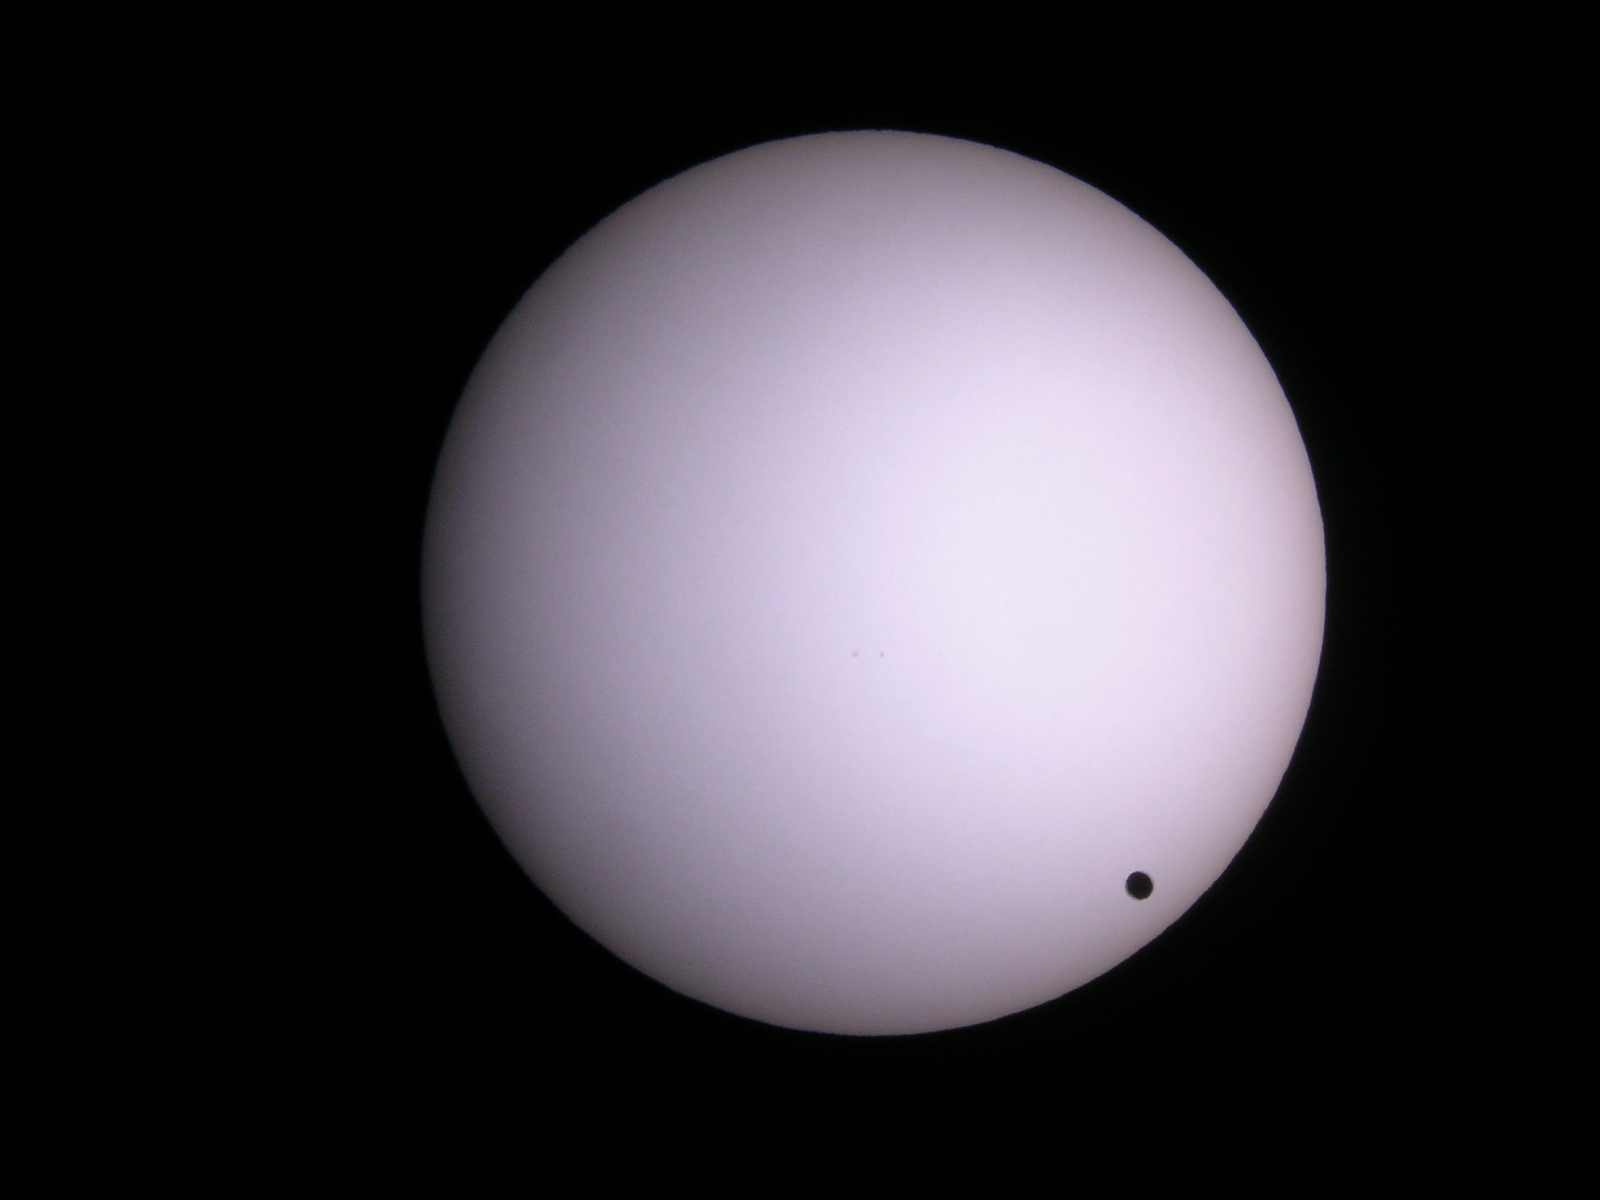 Dave McCarter's 2004 image of Venus near the Solar limb